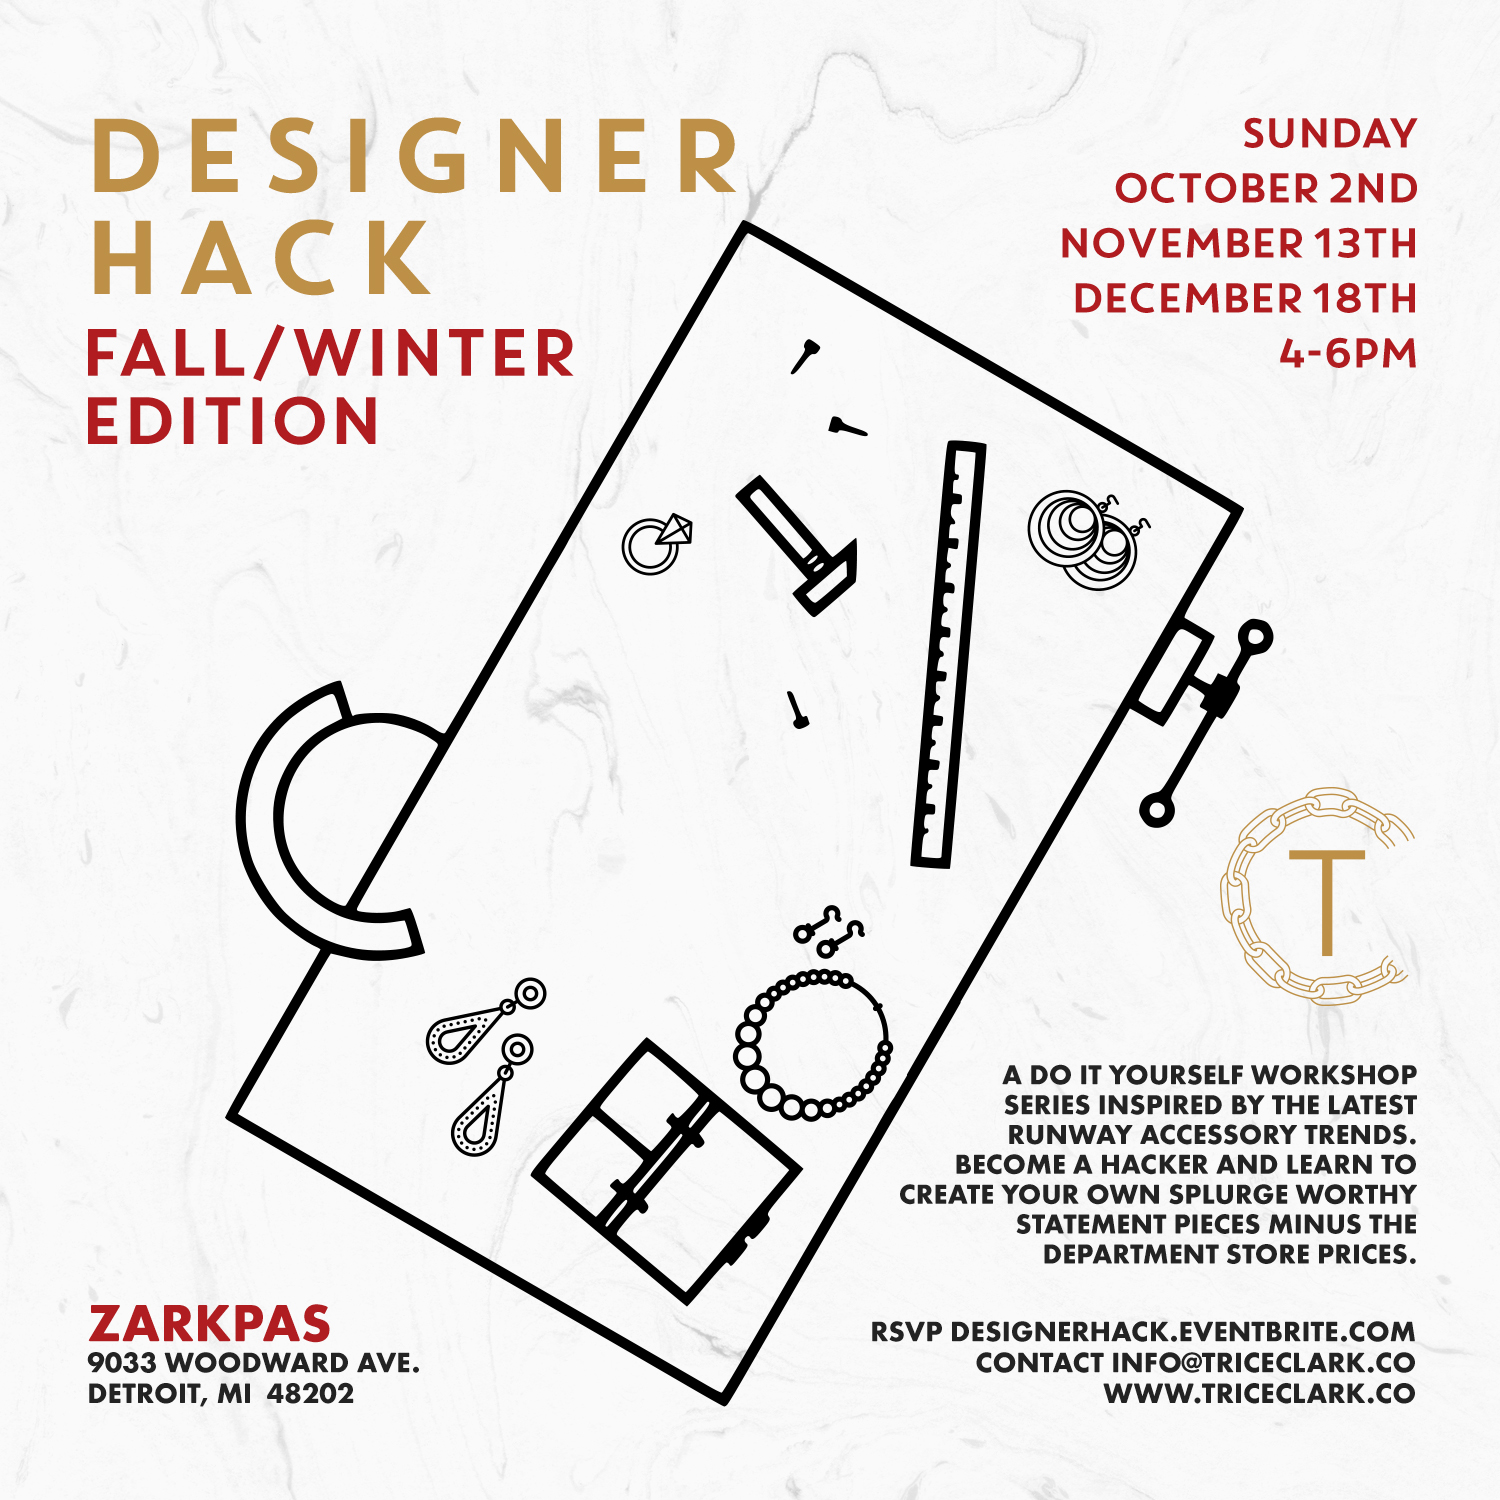 Be honest we all have been swooning over the latest collections showcased during New York Fashion Week. If you're a frugal fashionista like myself then you haven't exactly been knocking down the high end department stores door to buy a piece fresh off the runway. Join me at Zarkpas for the Designer Hack Fall/Winter series where we will create a do it yourself version of the latest season's accessory trends. We will make a statement necklace, earrings, and maybe even a hat. RSVP to become a Hacker   www.designerhack.eventbrite.com